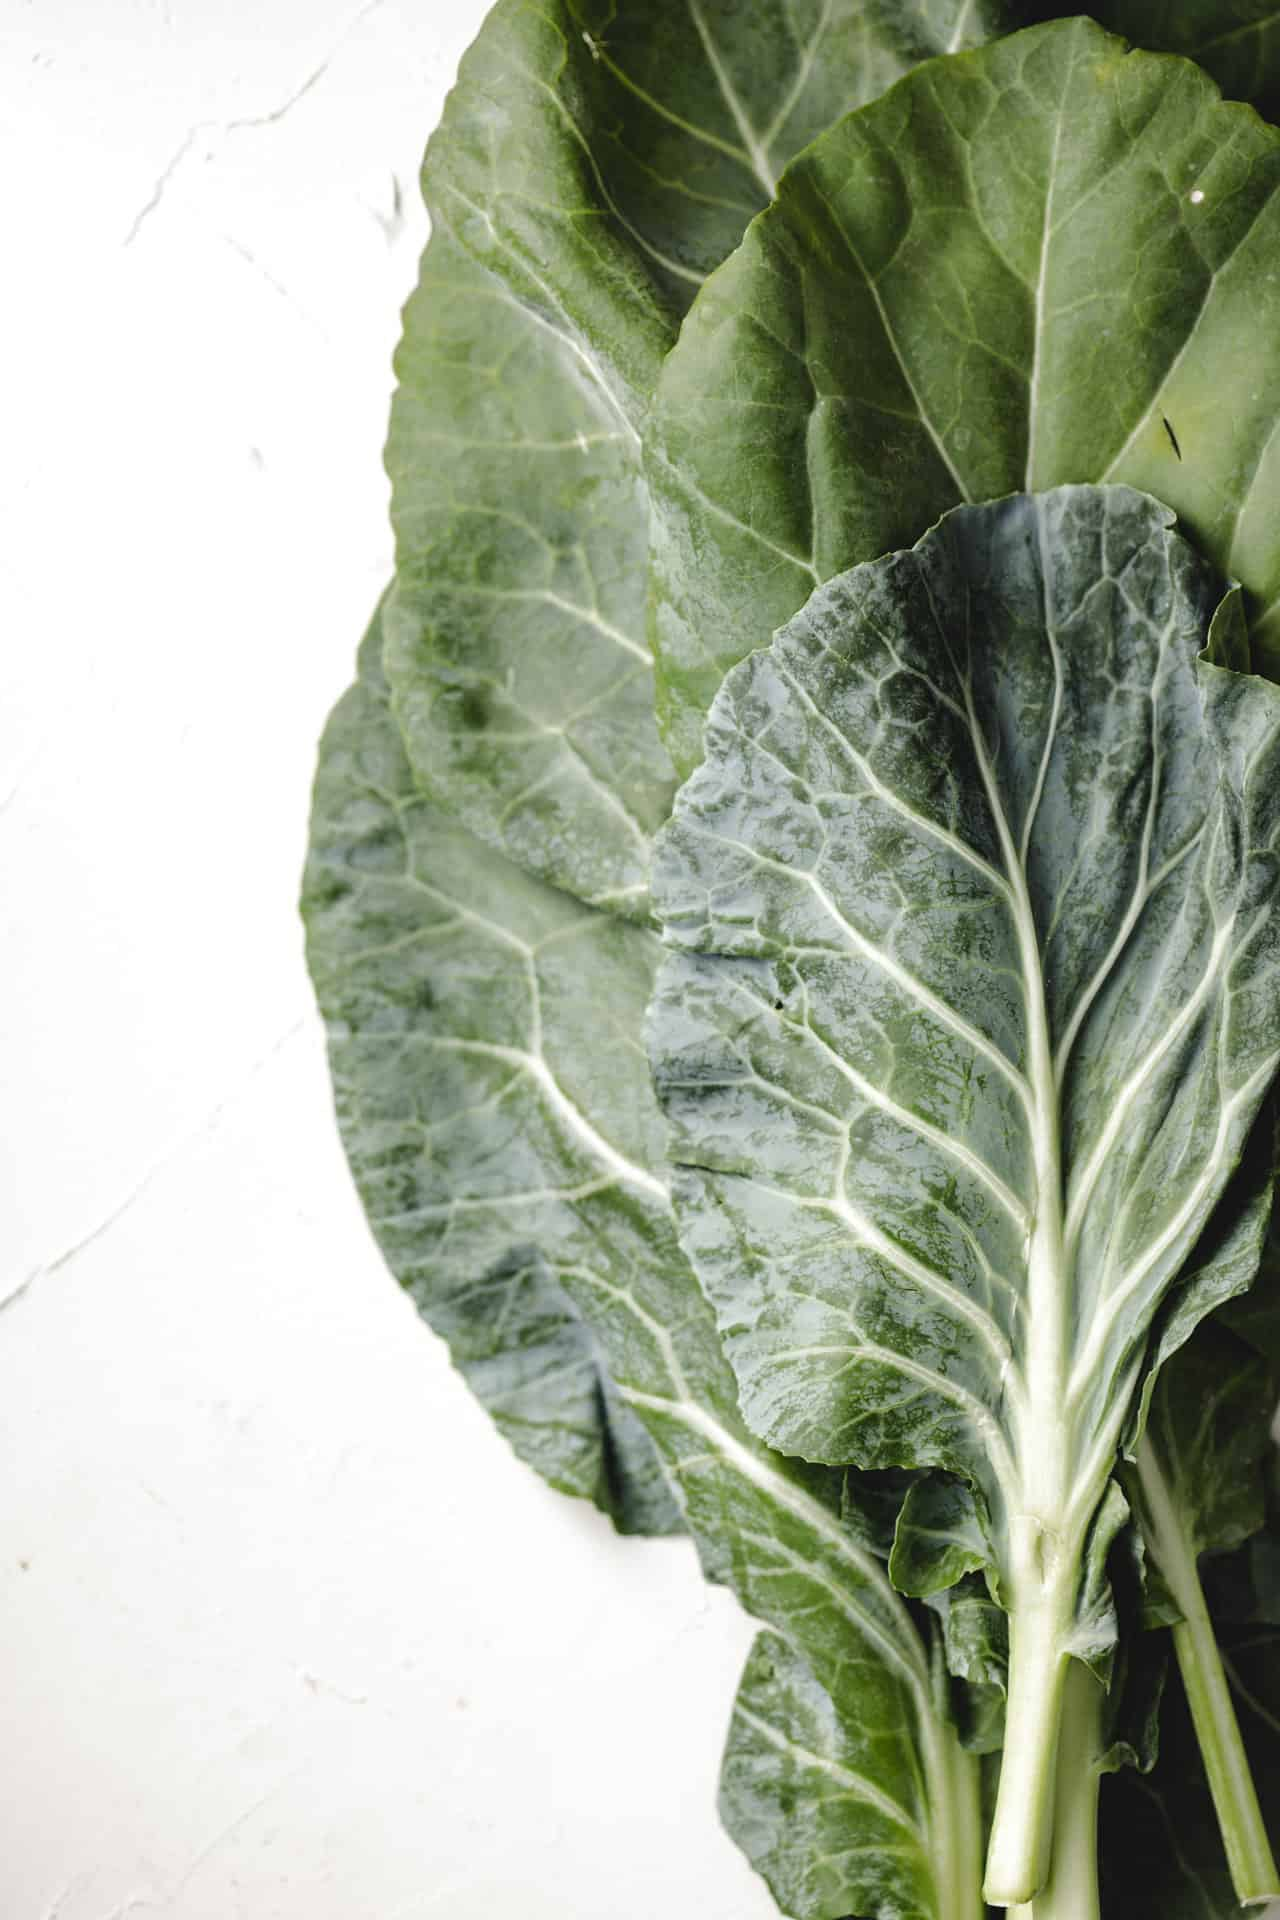 Large collard greens on a white background